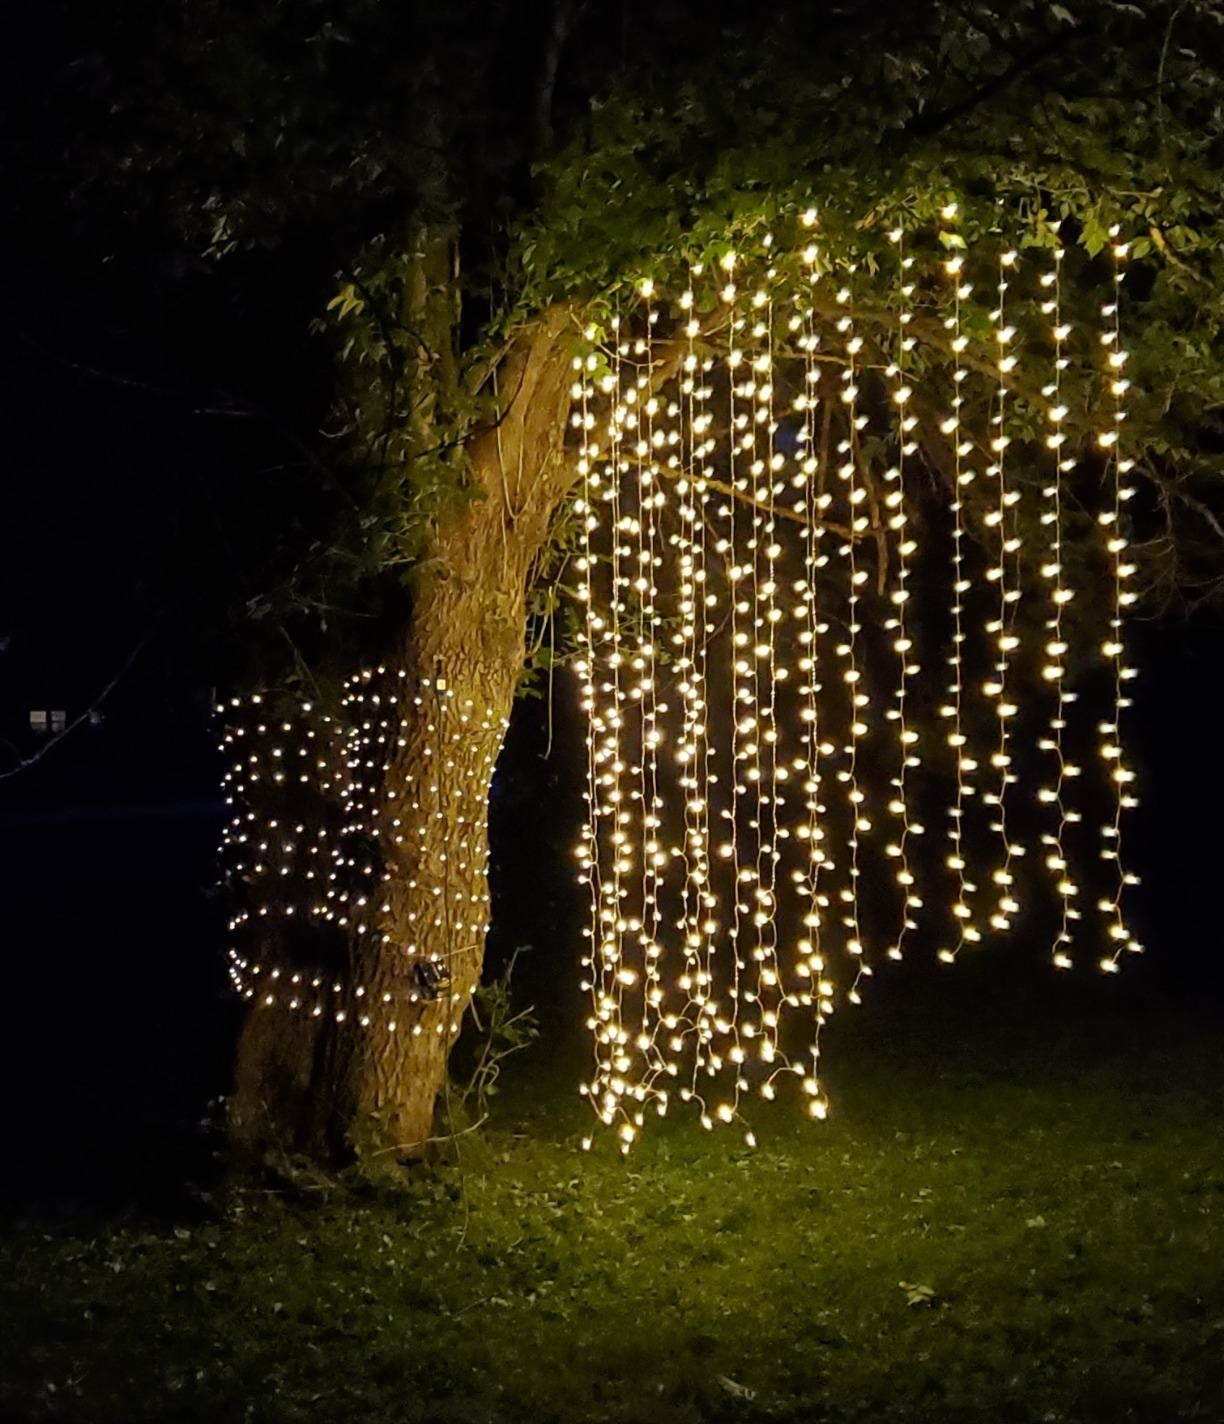 Curtain string lights hanging from a tree